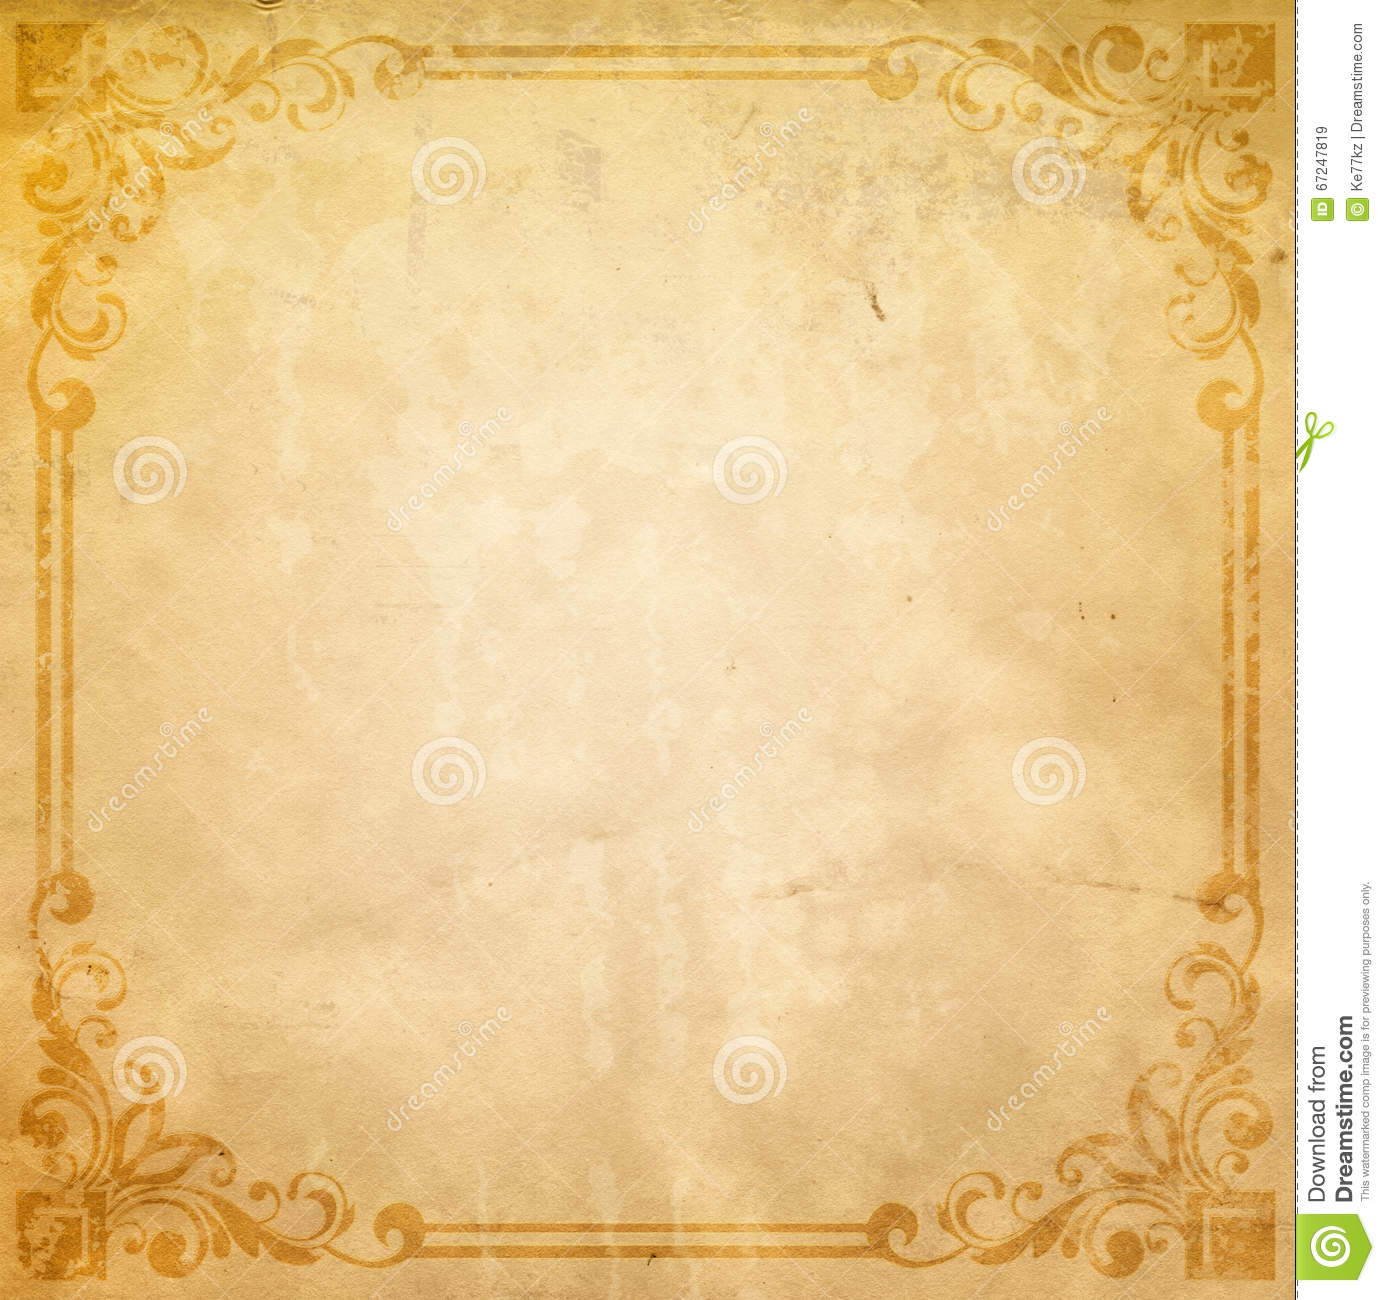 Old Paper Background With Old-fashioned Border. Stock ...